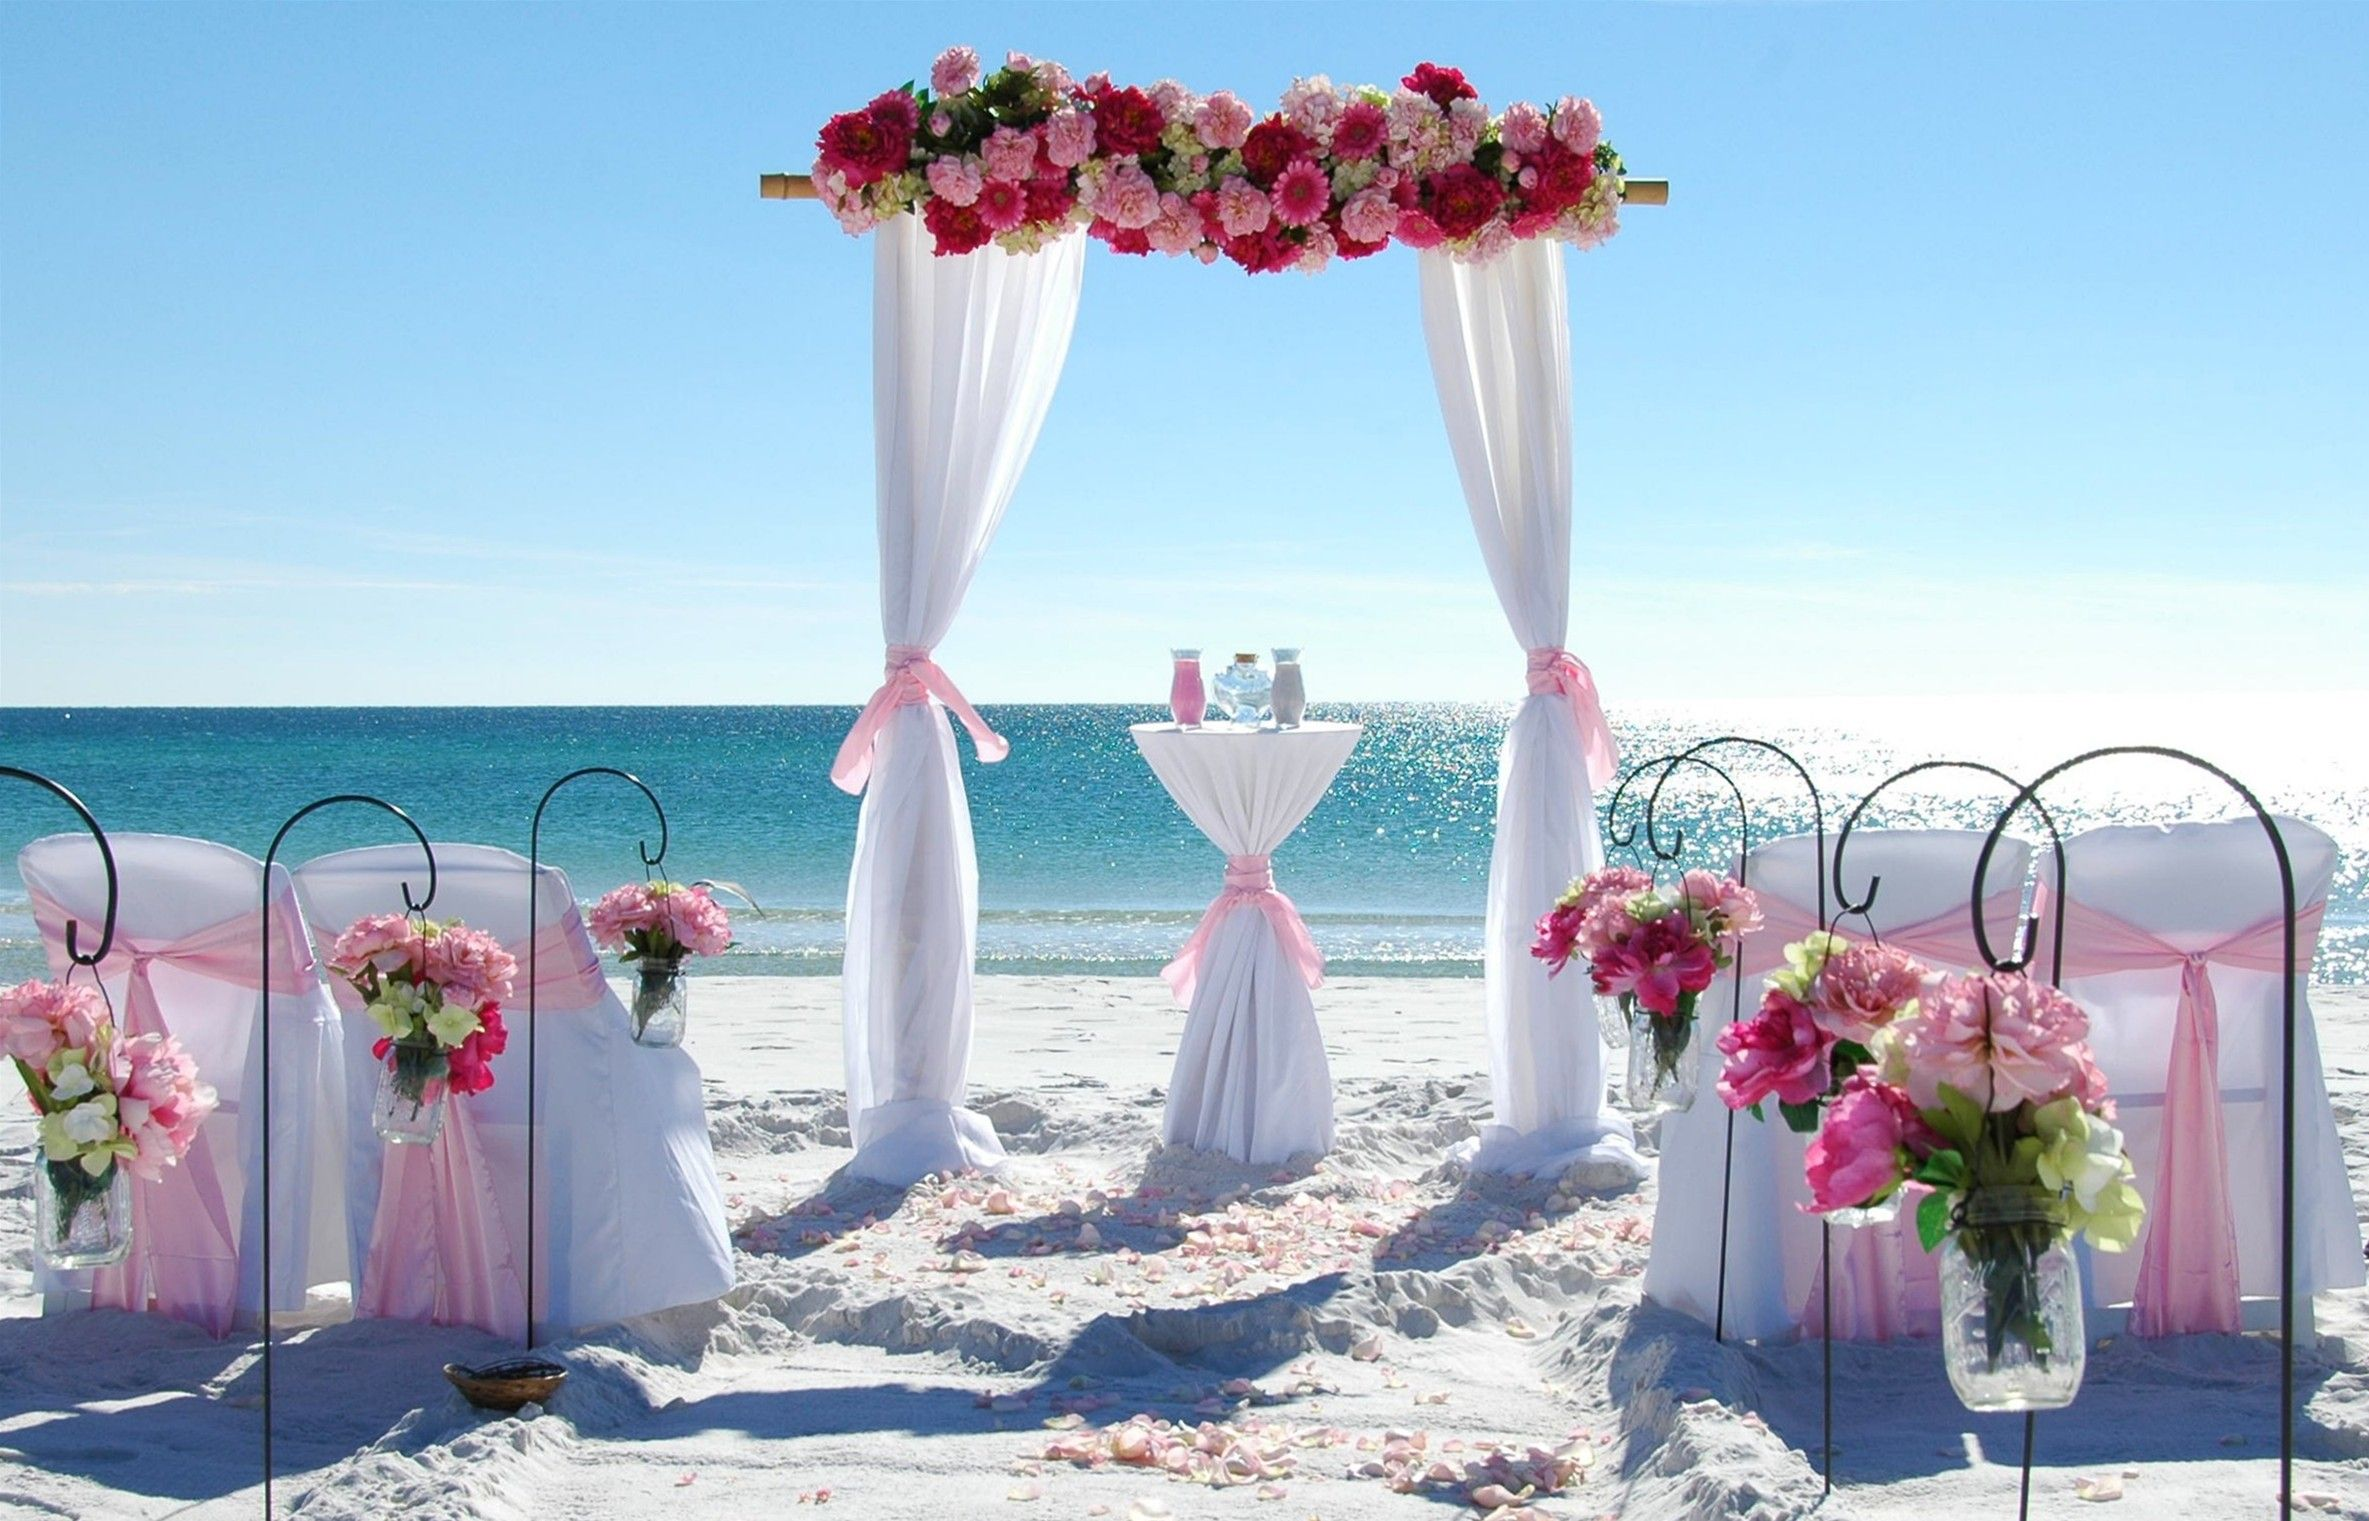 Affordable All Inclusive Destin Florida Barefoot Beach Wedding Packages Simple Romantic Sunset Weddings And Vow Renewals In